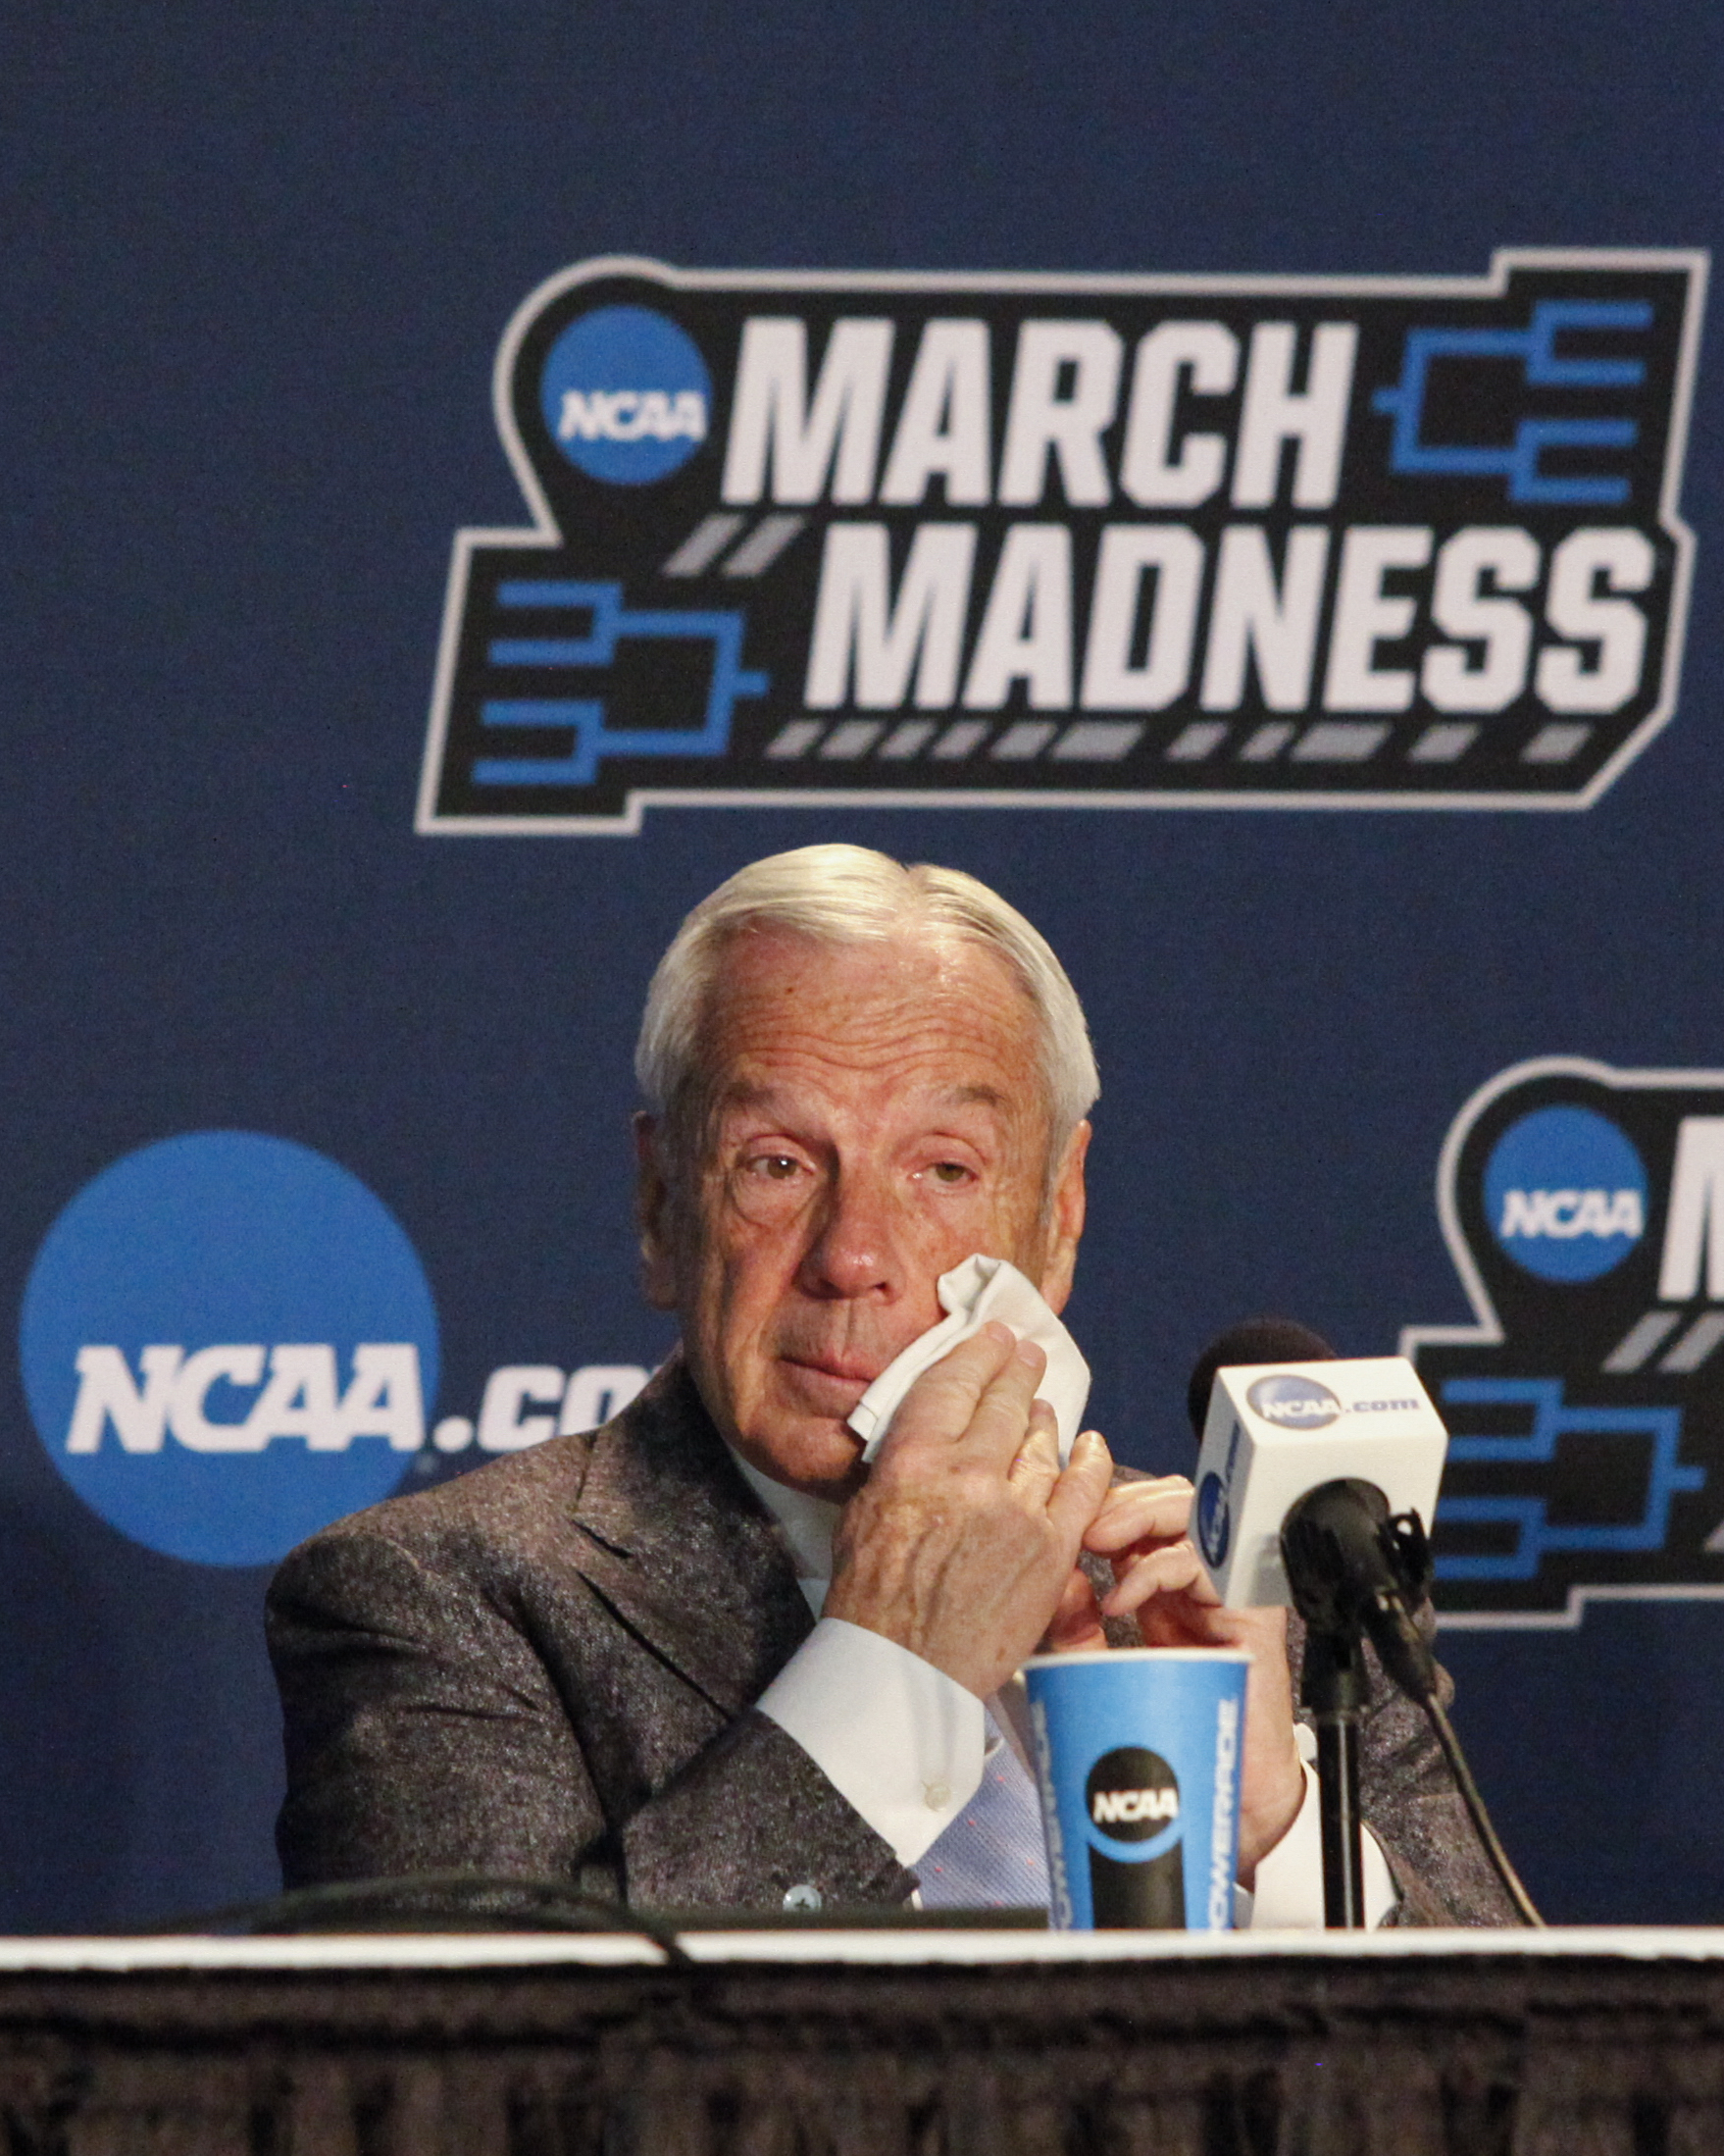 UNC head coach Roy Williams wipes tears from his face as he speaks with media after a loss in the 2018 NCAA tournament.